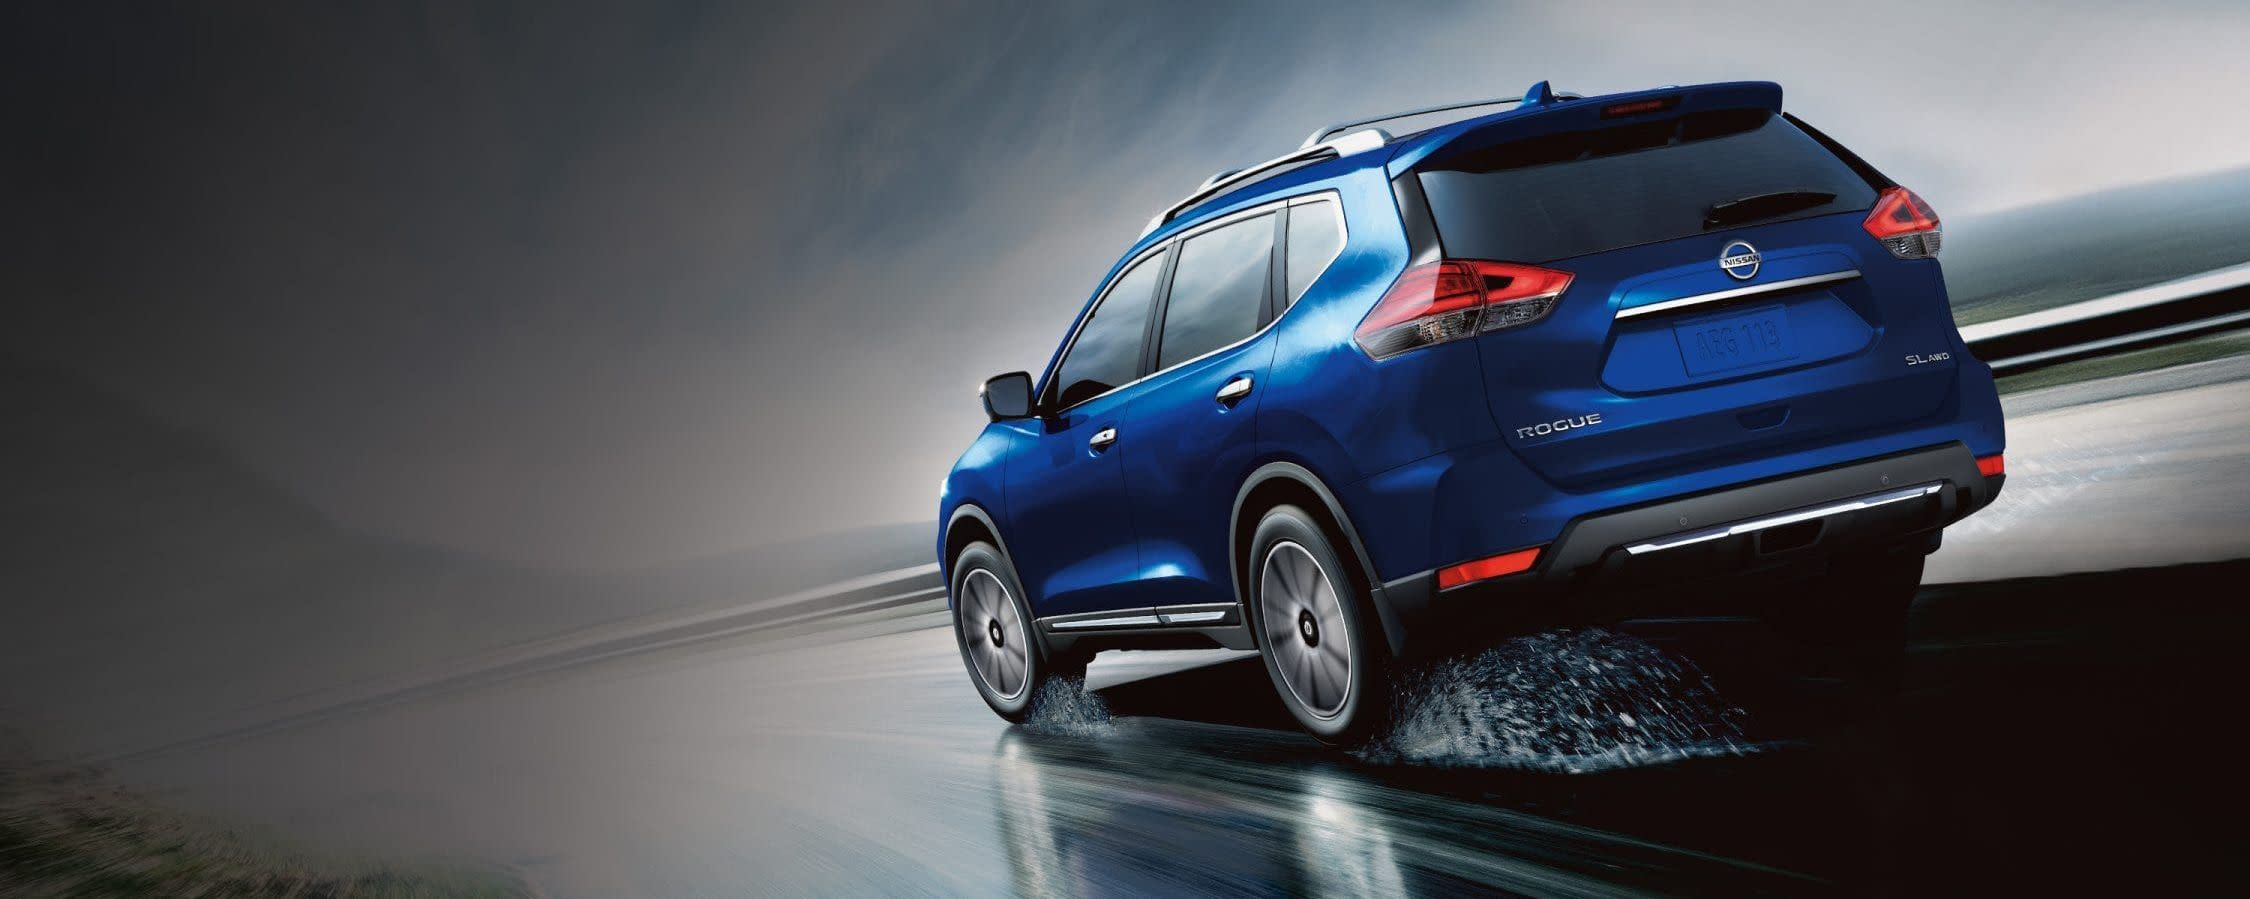 2019 Nissan Rogue Lease in Milford, MA